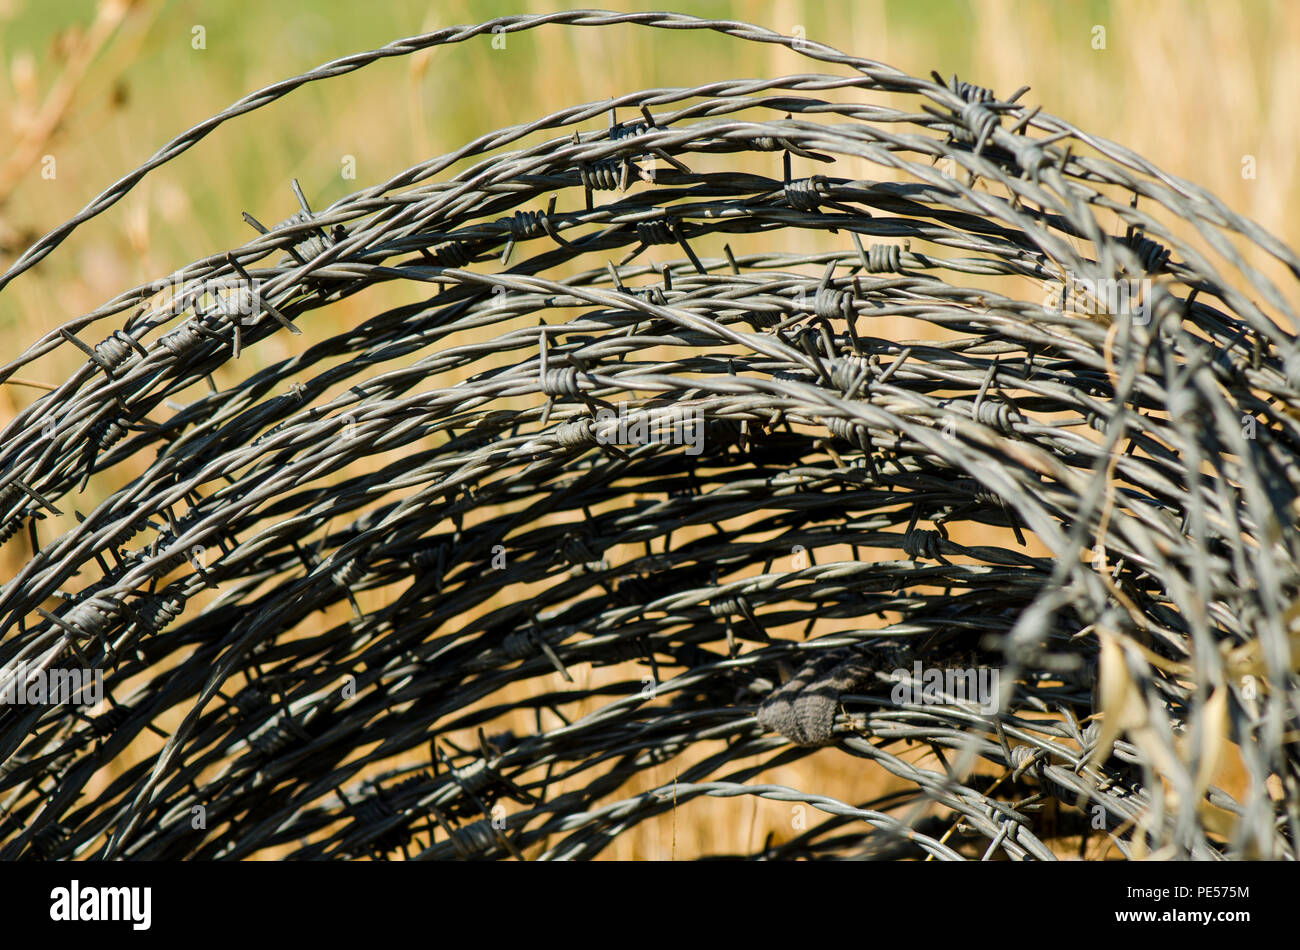 Farmers Fencing Stock Photos & Farmers Fencing Stock Images - Alamy